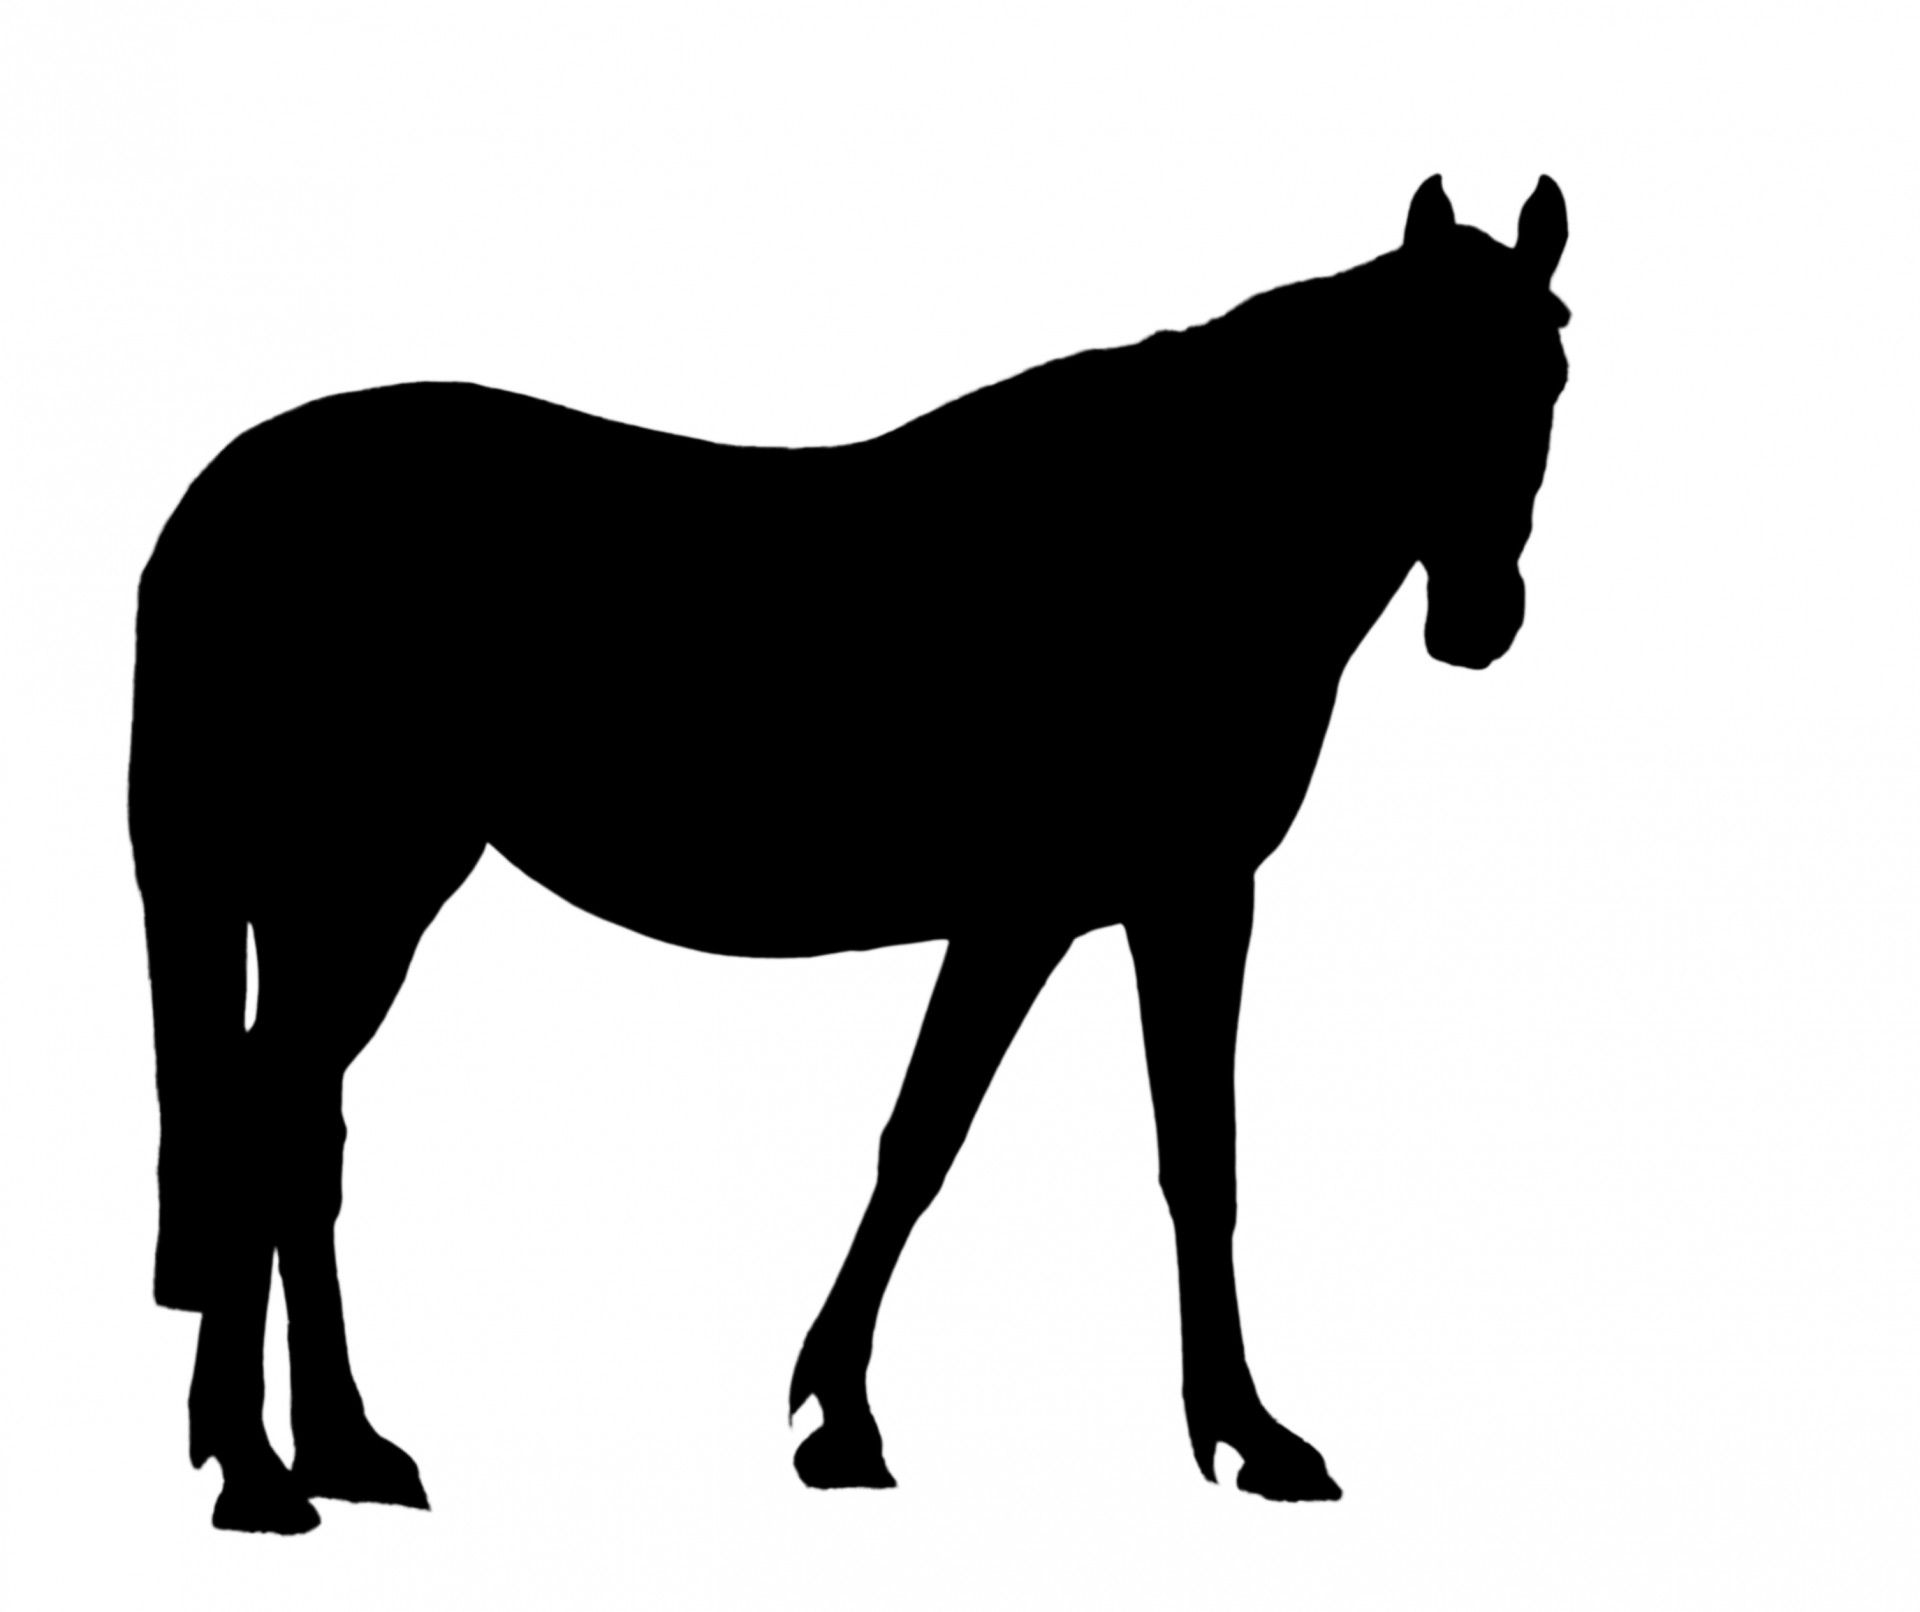 dressage horse silhouette at getdrawings com free for personal use rh getdrawings com clipart horses clip art horseshoe template